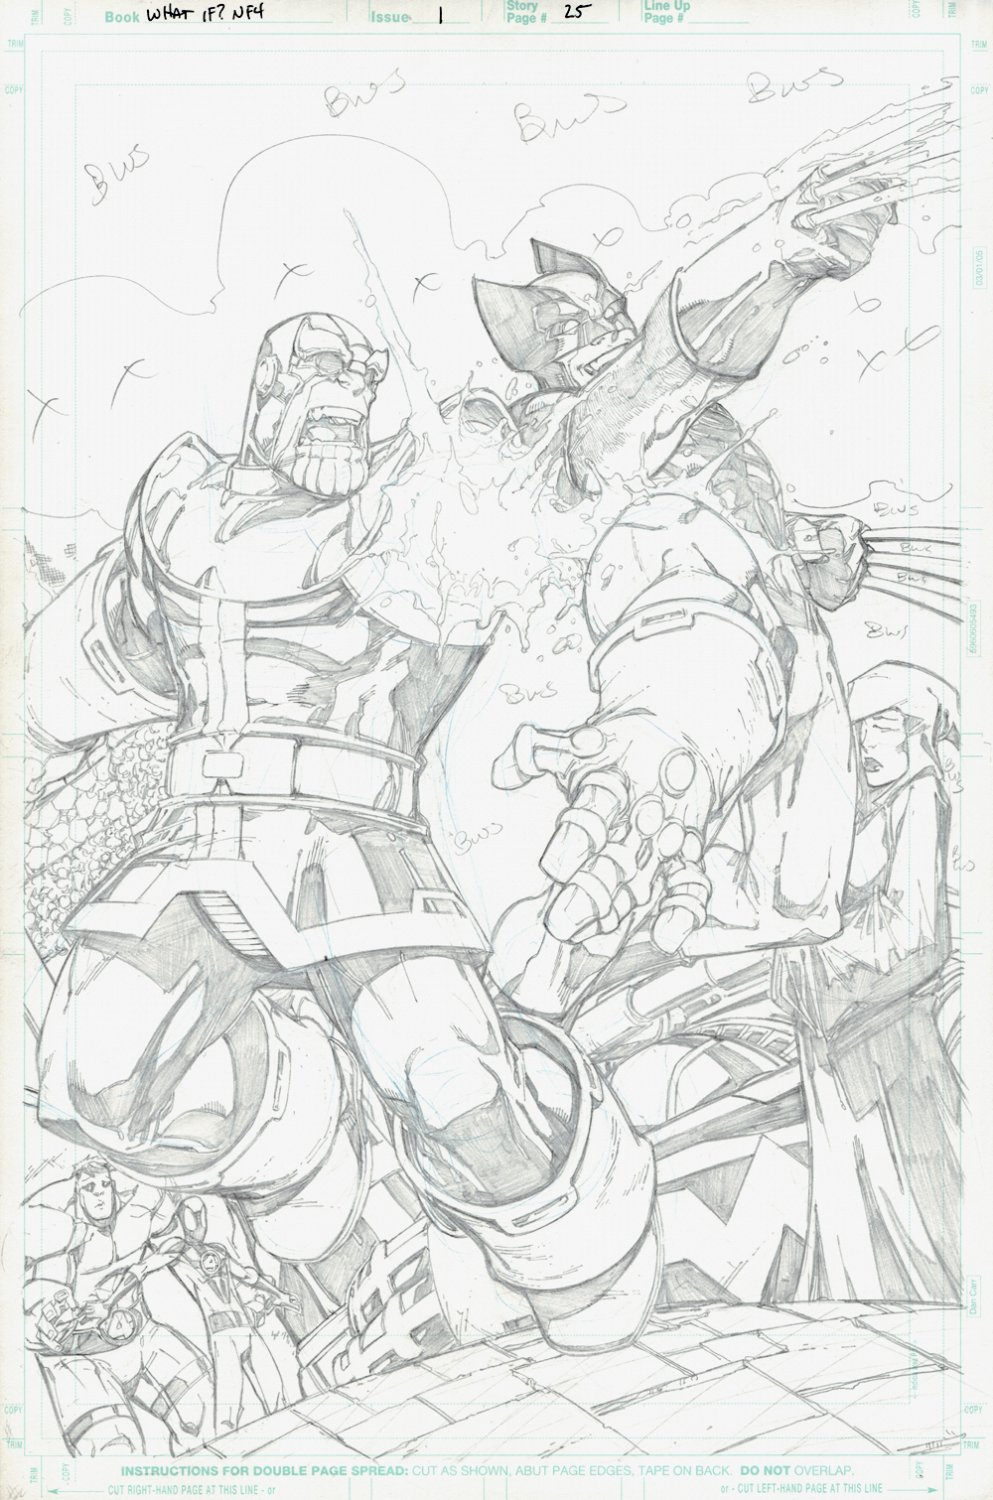 What If? Newer Fantastic Four #1 p 25 SPLASH (Wolverine Cuts Thanos's Infinity Gauntlet Arm Right Off!) 2008